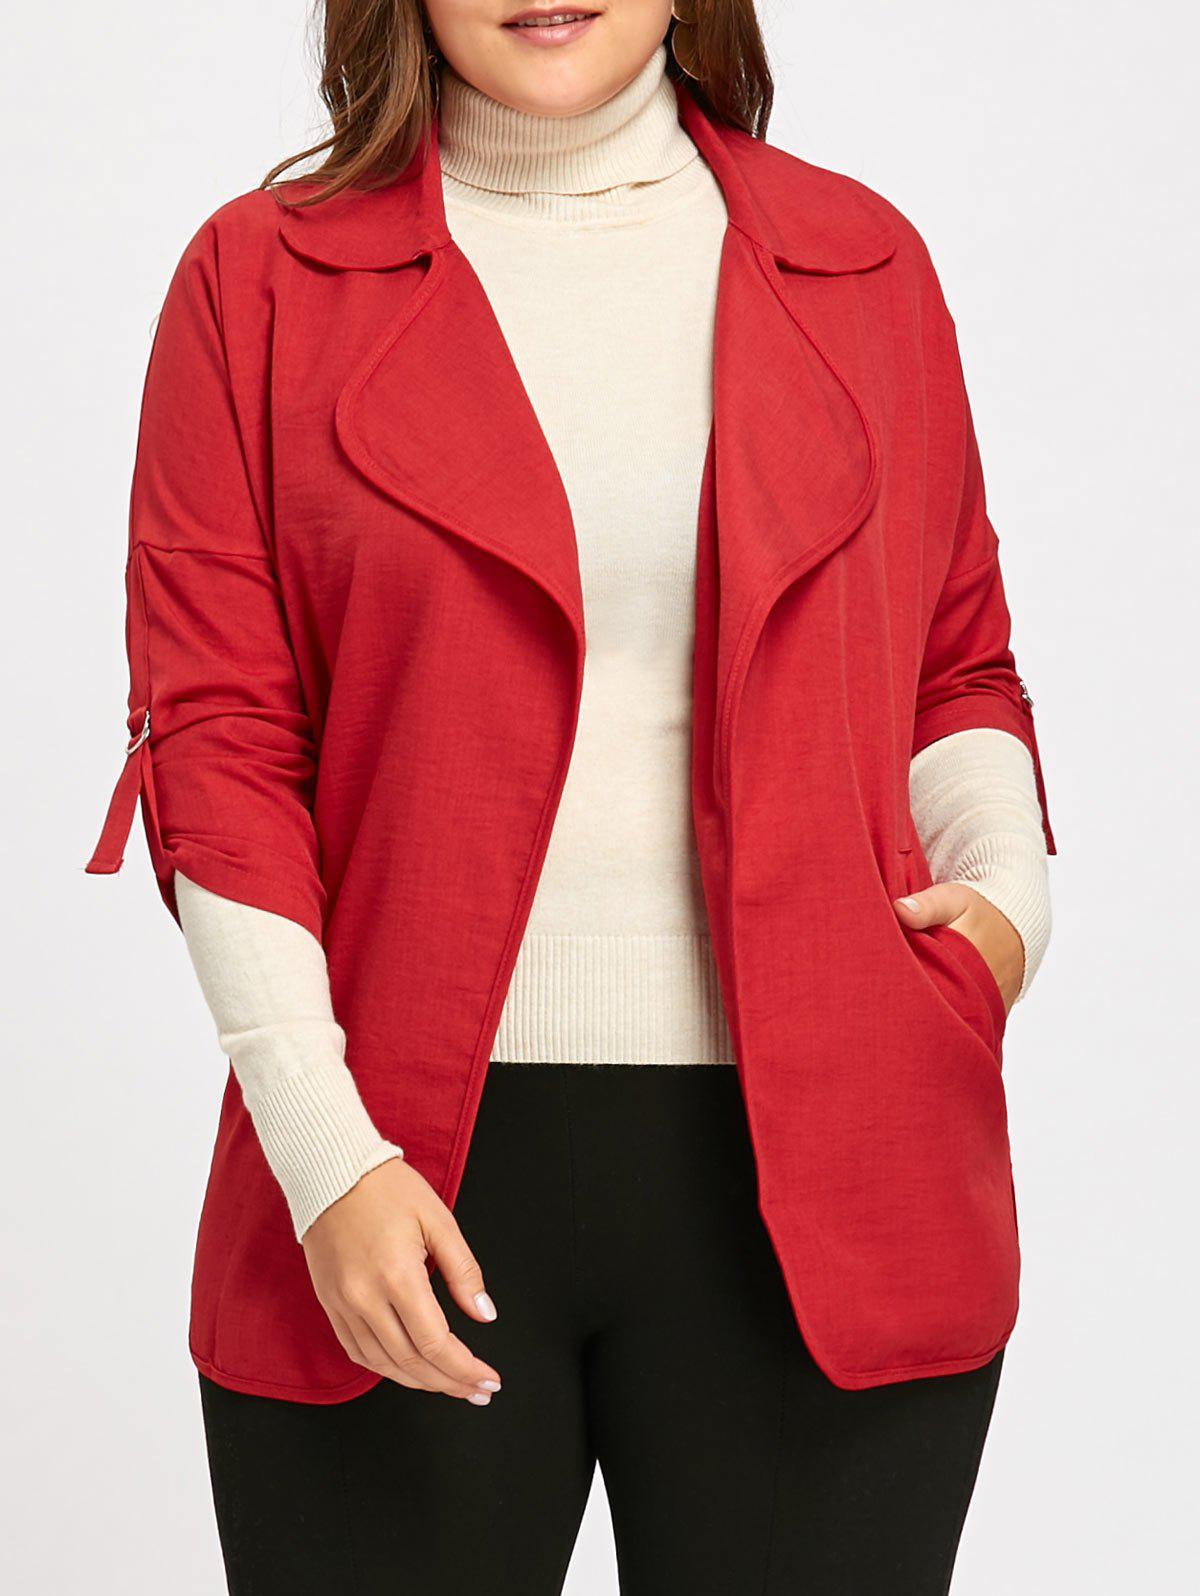 Roll Up Sleeve Turndown Collar Plus Size Trench CoatWOMEN<br><br>Size: 5XL; Color: RED; Clothes Type: Trench; Material: Polyester; Type: Slim; Shirt Length: Long; Sleeve Length: Full; Collar: Turn-down Collar; Closure Type: Double Breasted; Pattern Type: Solid; Embellishment: Pockets; Style: Fashion; Season: Fall; Weight: 0.4200kg; Package Contents: 1 x Coat;